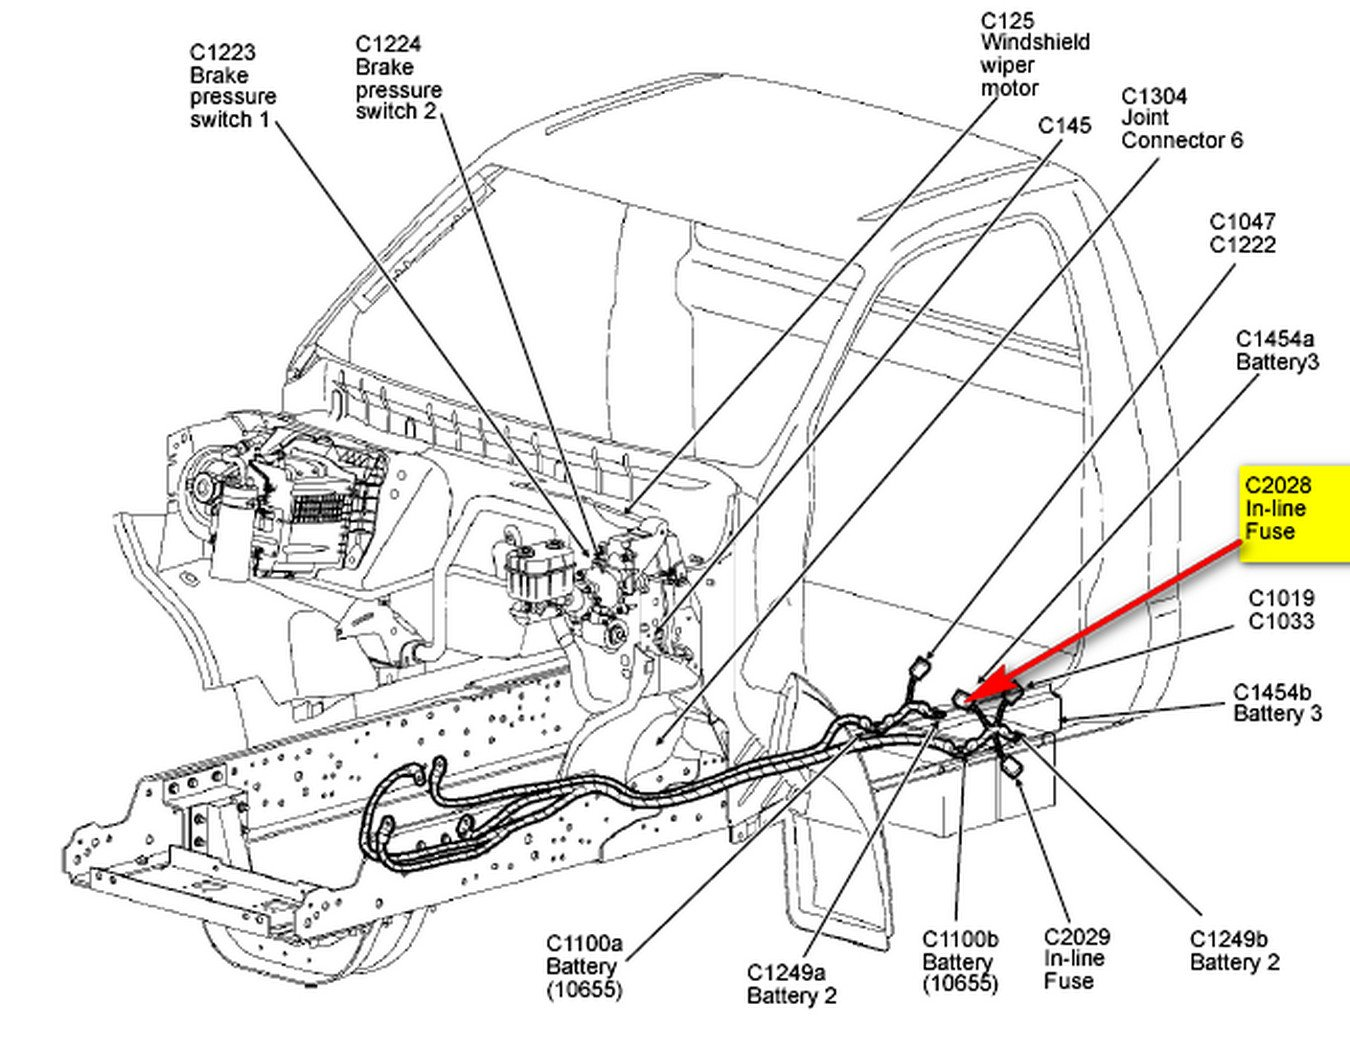 Wiring Diagram 2000 Ford F650 Cat - Wiring Diagrams Show on